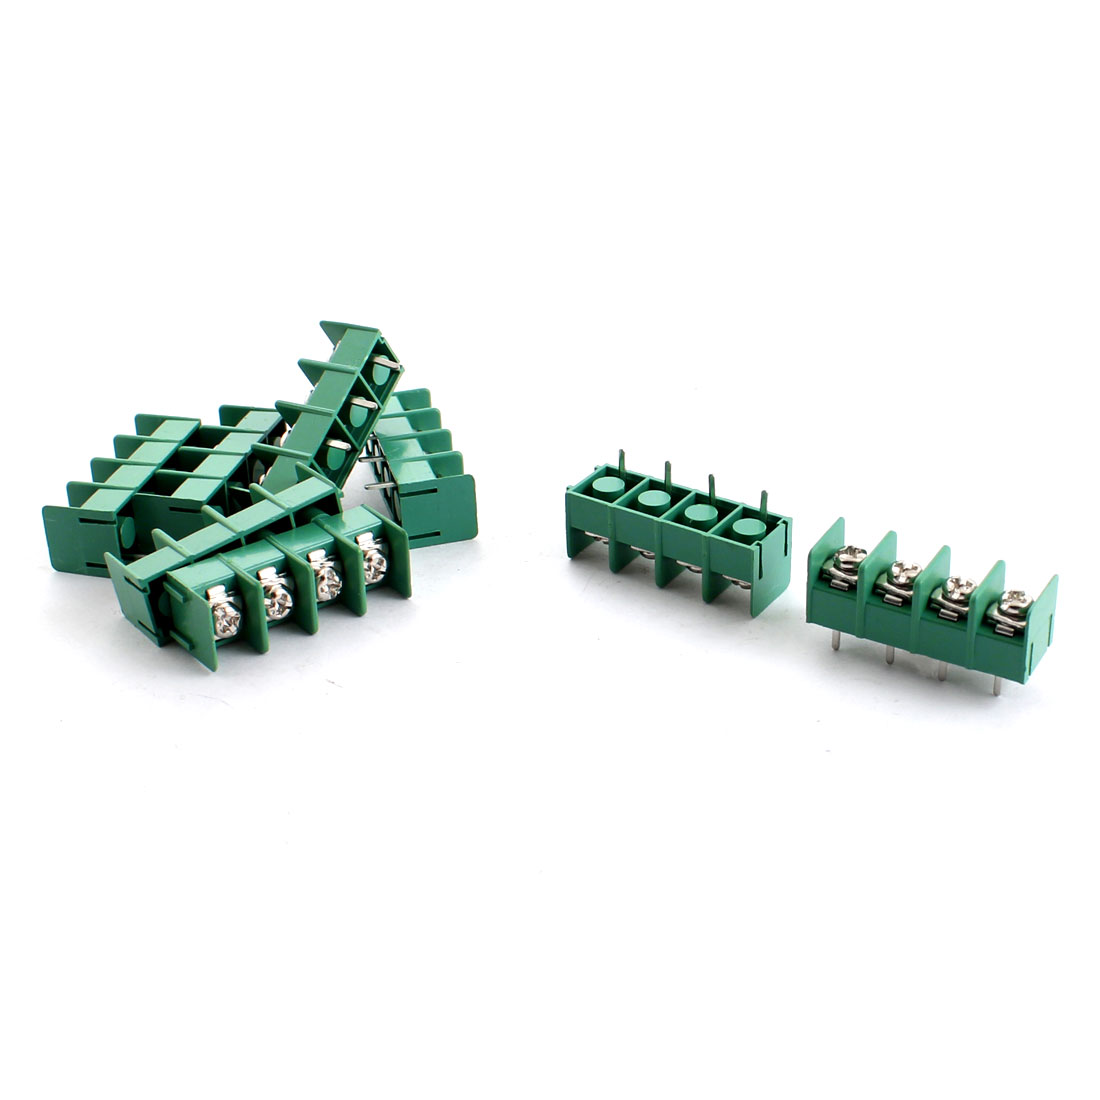 8 Pcs Green 4pin 7.62mm Pitch 4 Positions 300V 30A Barrier Terminal Block Strip